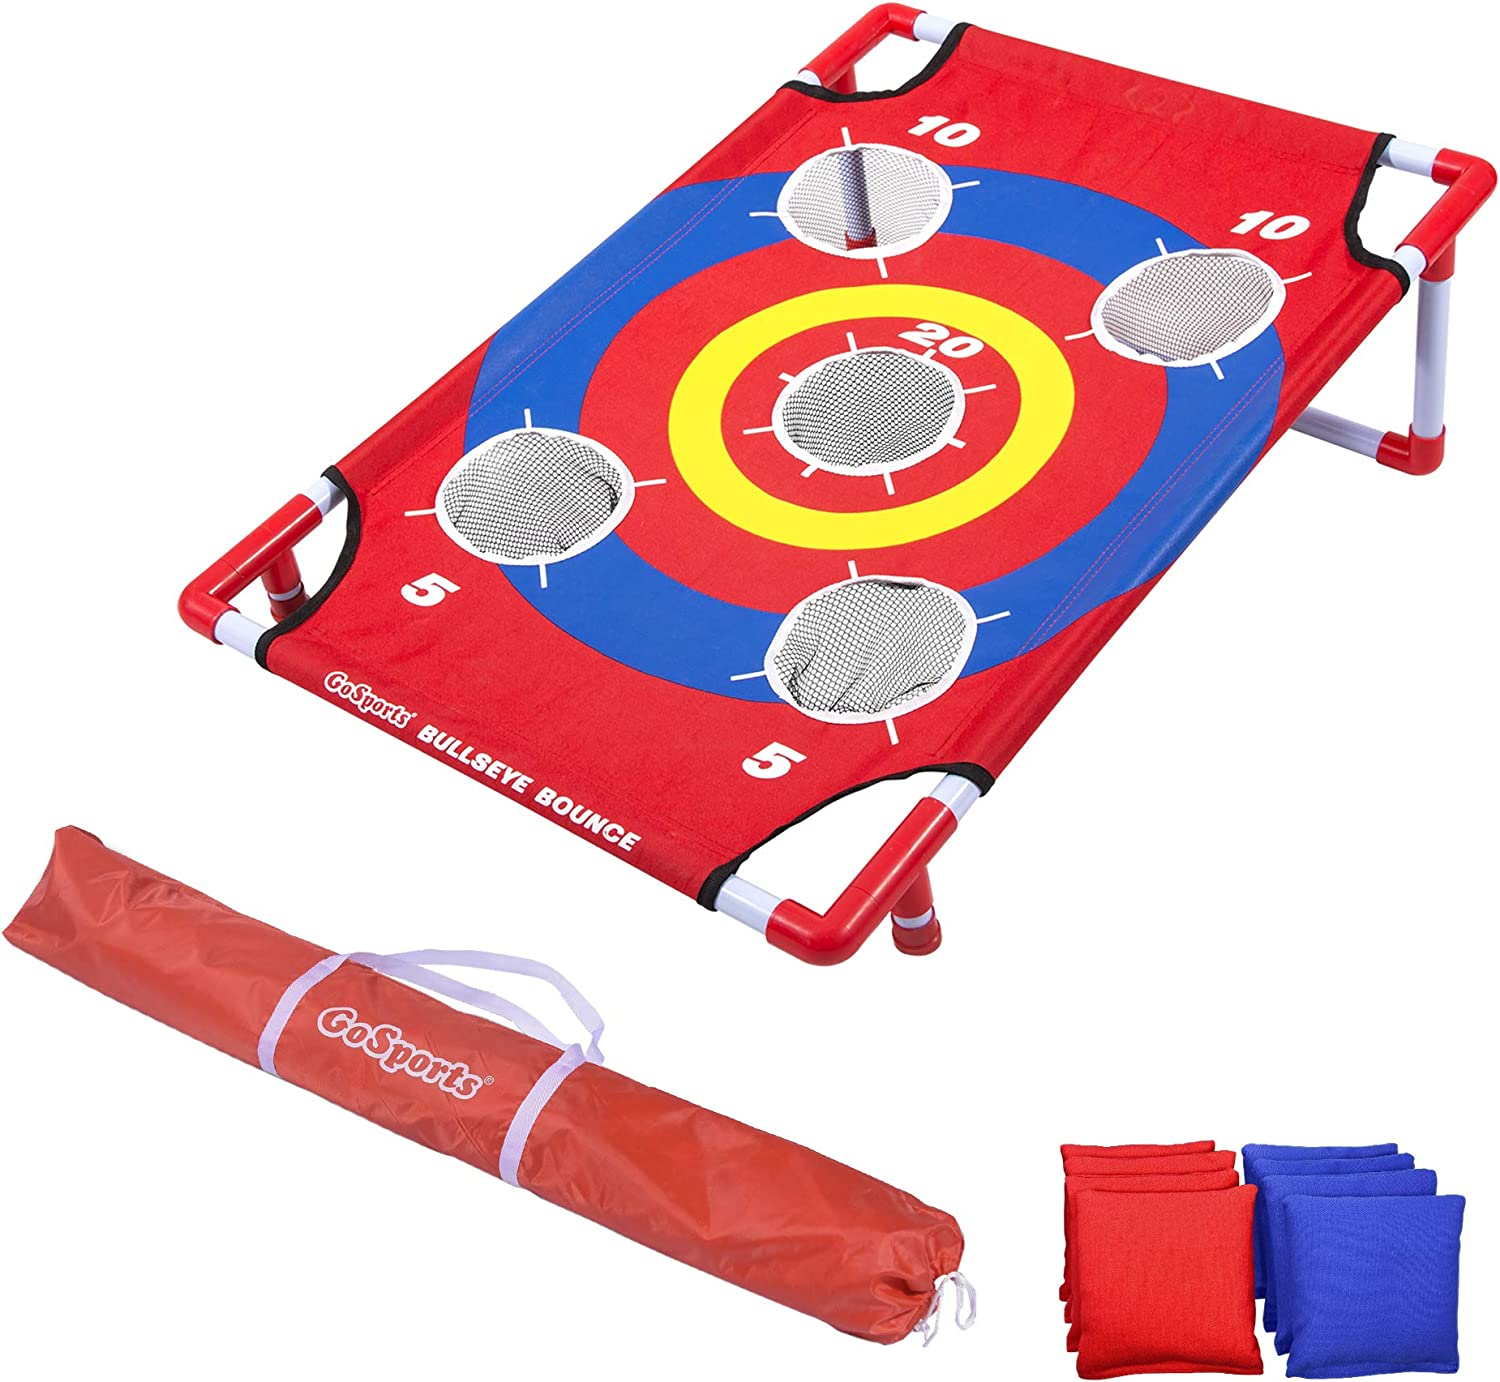 Great for All Ages /& Includes Fun Rules GoSports 5 Hole Cornhole Toss Game